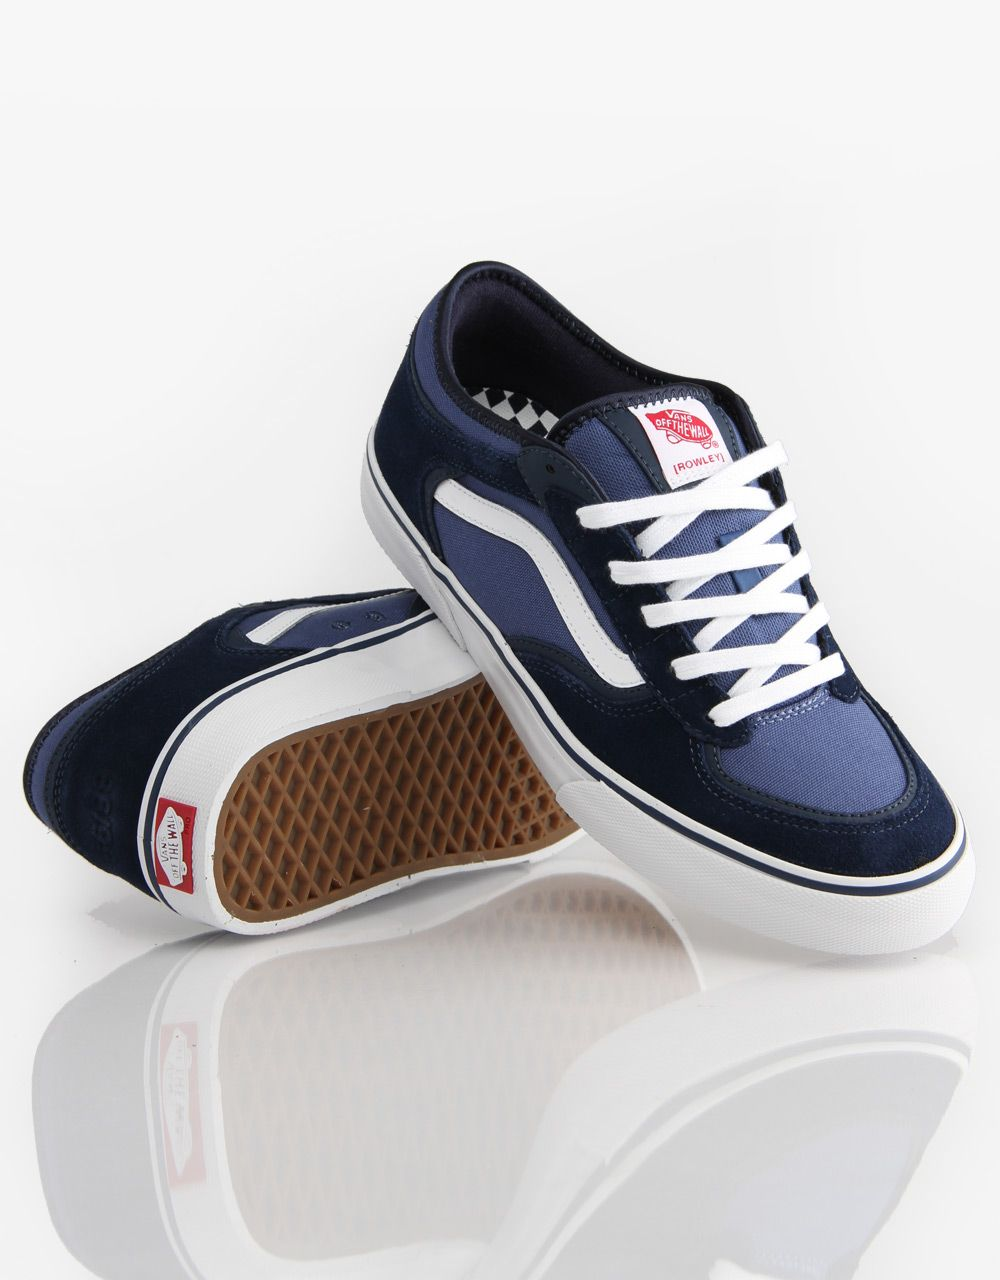 c8954a218a Vans Rowley Pro Skate Shoes - Navy White - RouteOne.co.uk